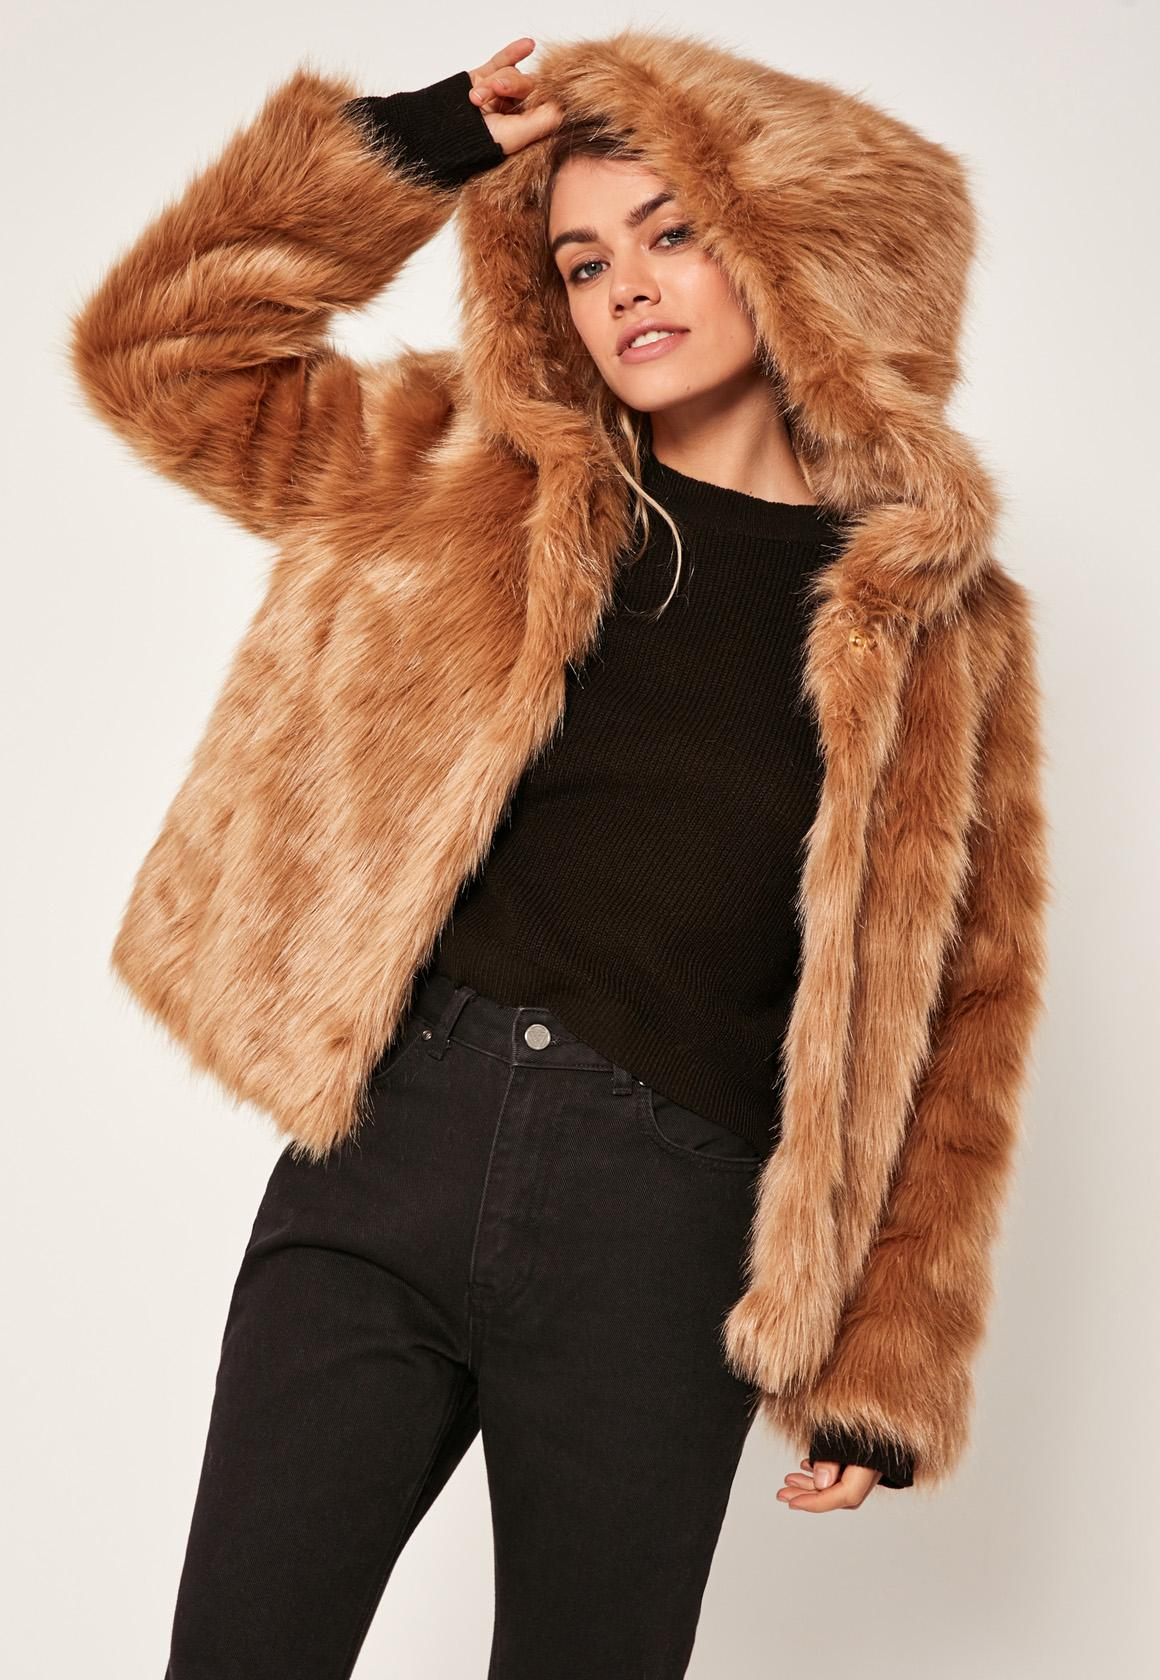 Faux Fur Coat Jacket - Tradingbasis